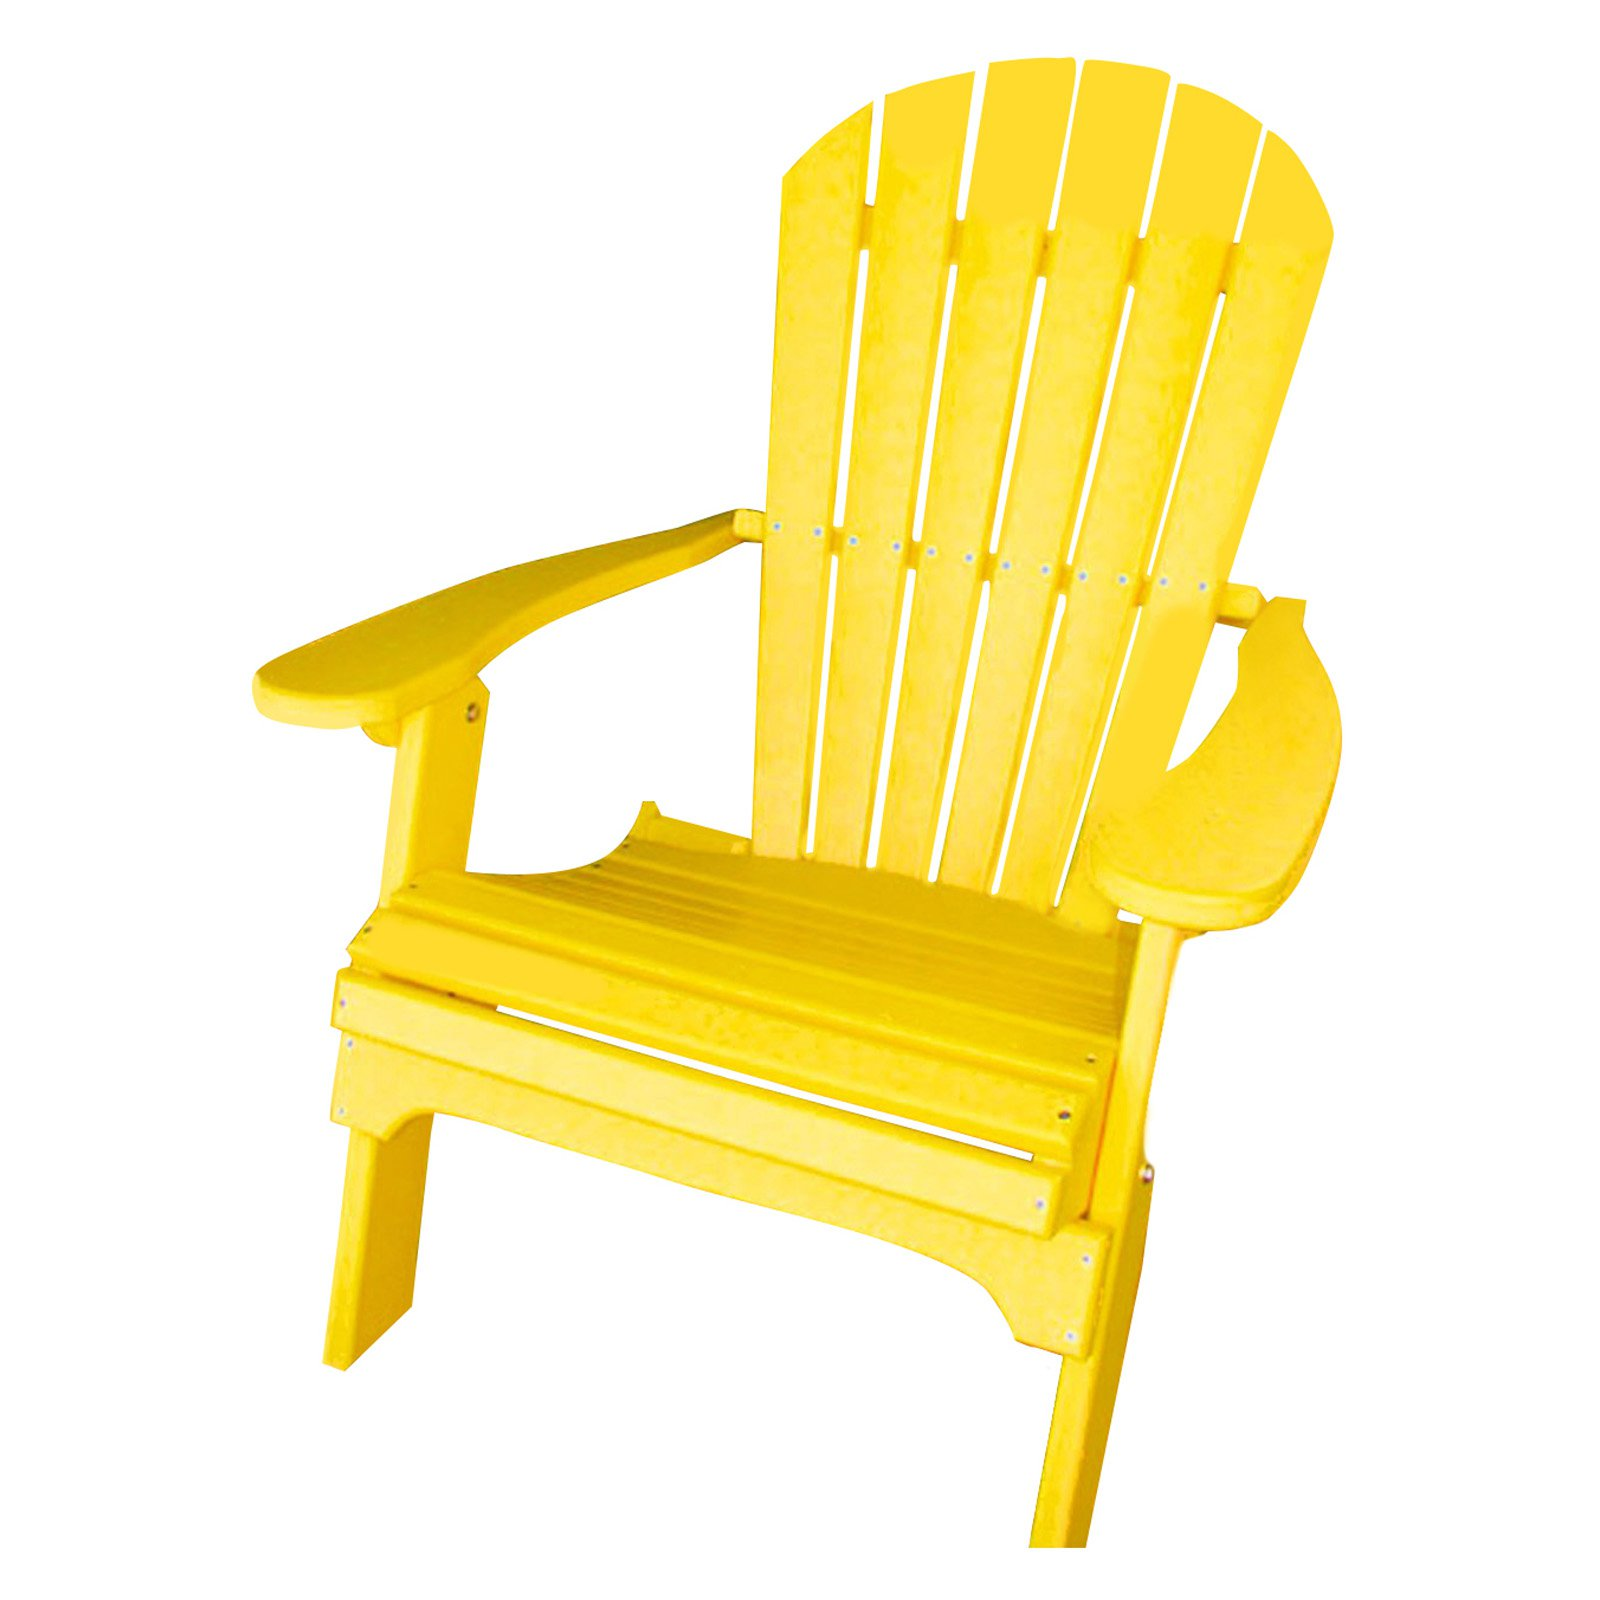 Phat Tommy Recycled Plastic Folding Adirondack Chair